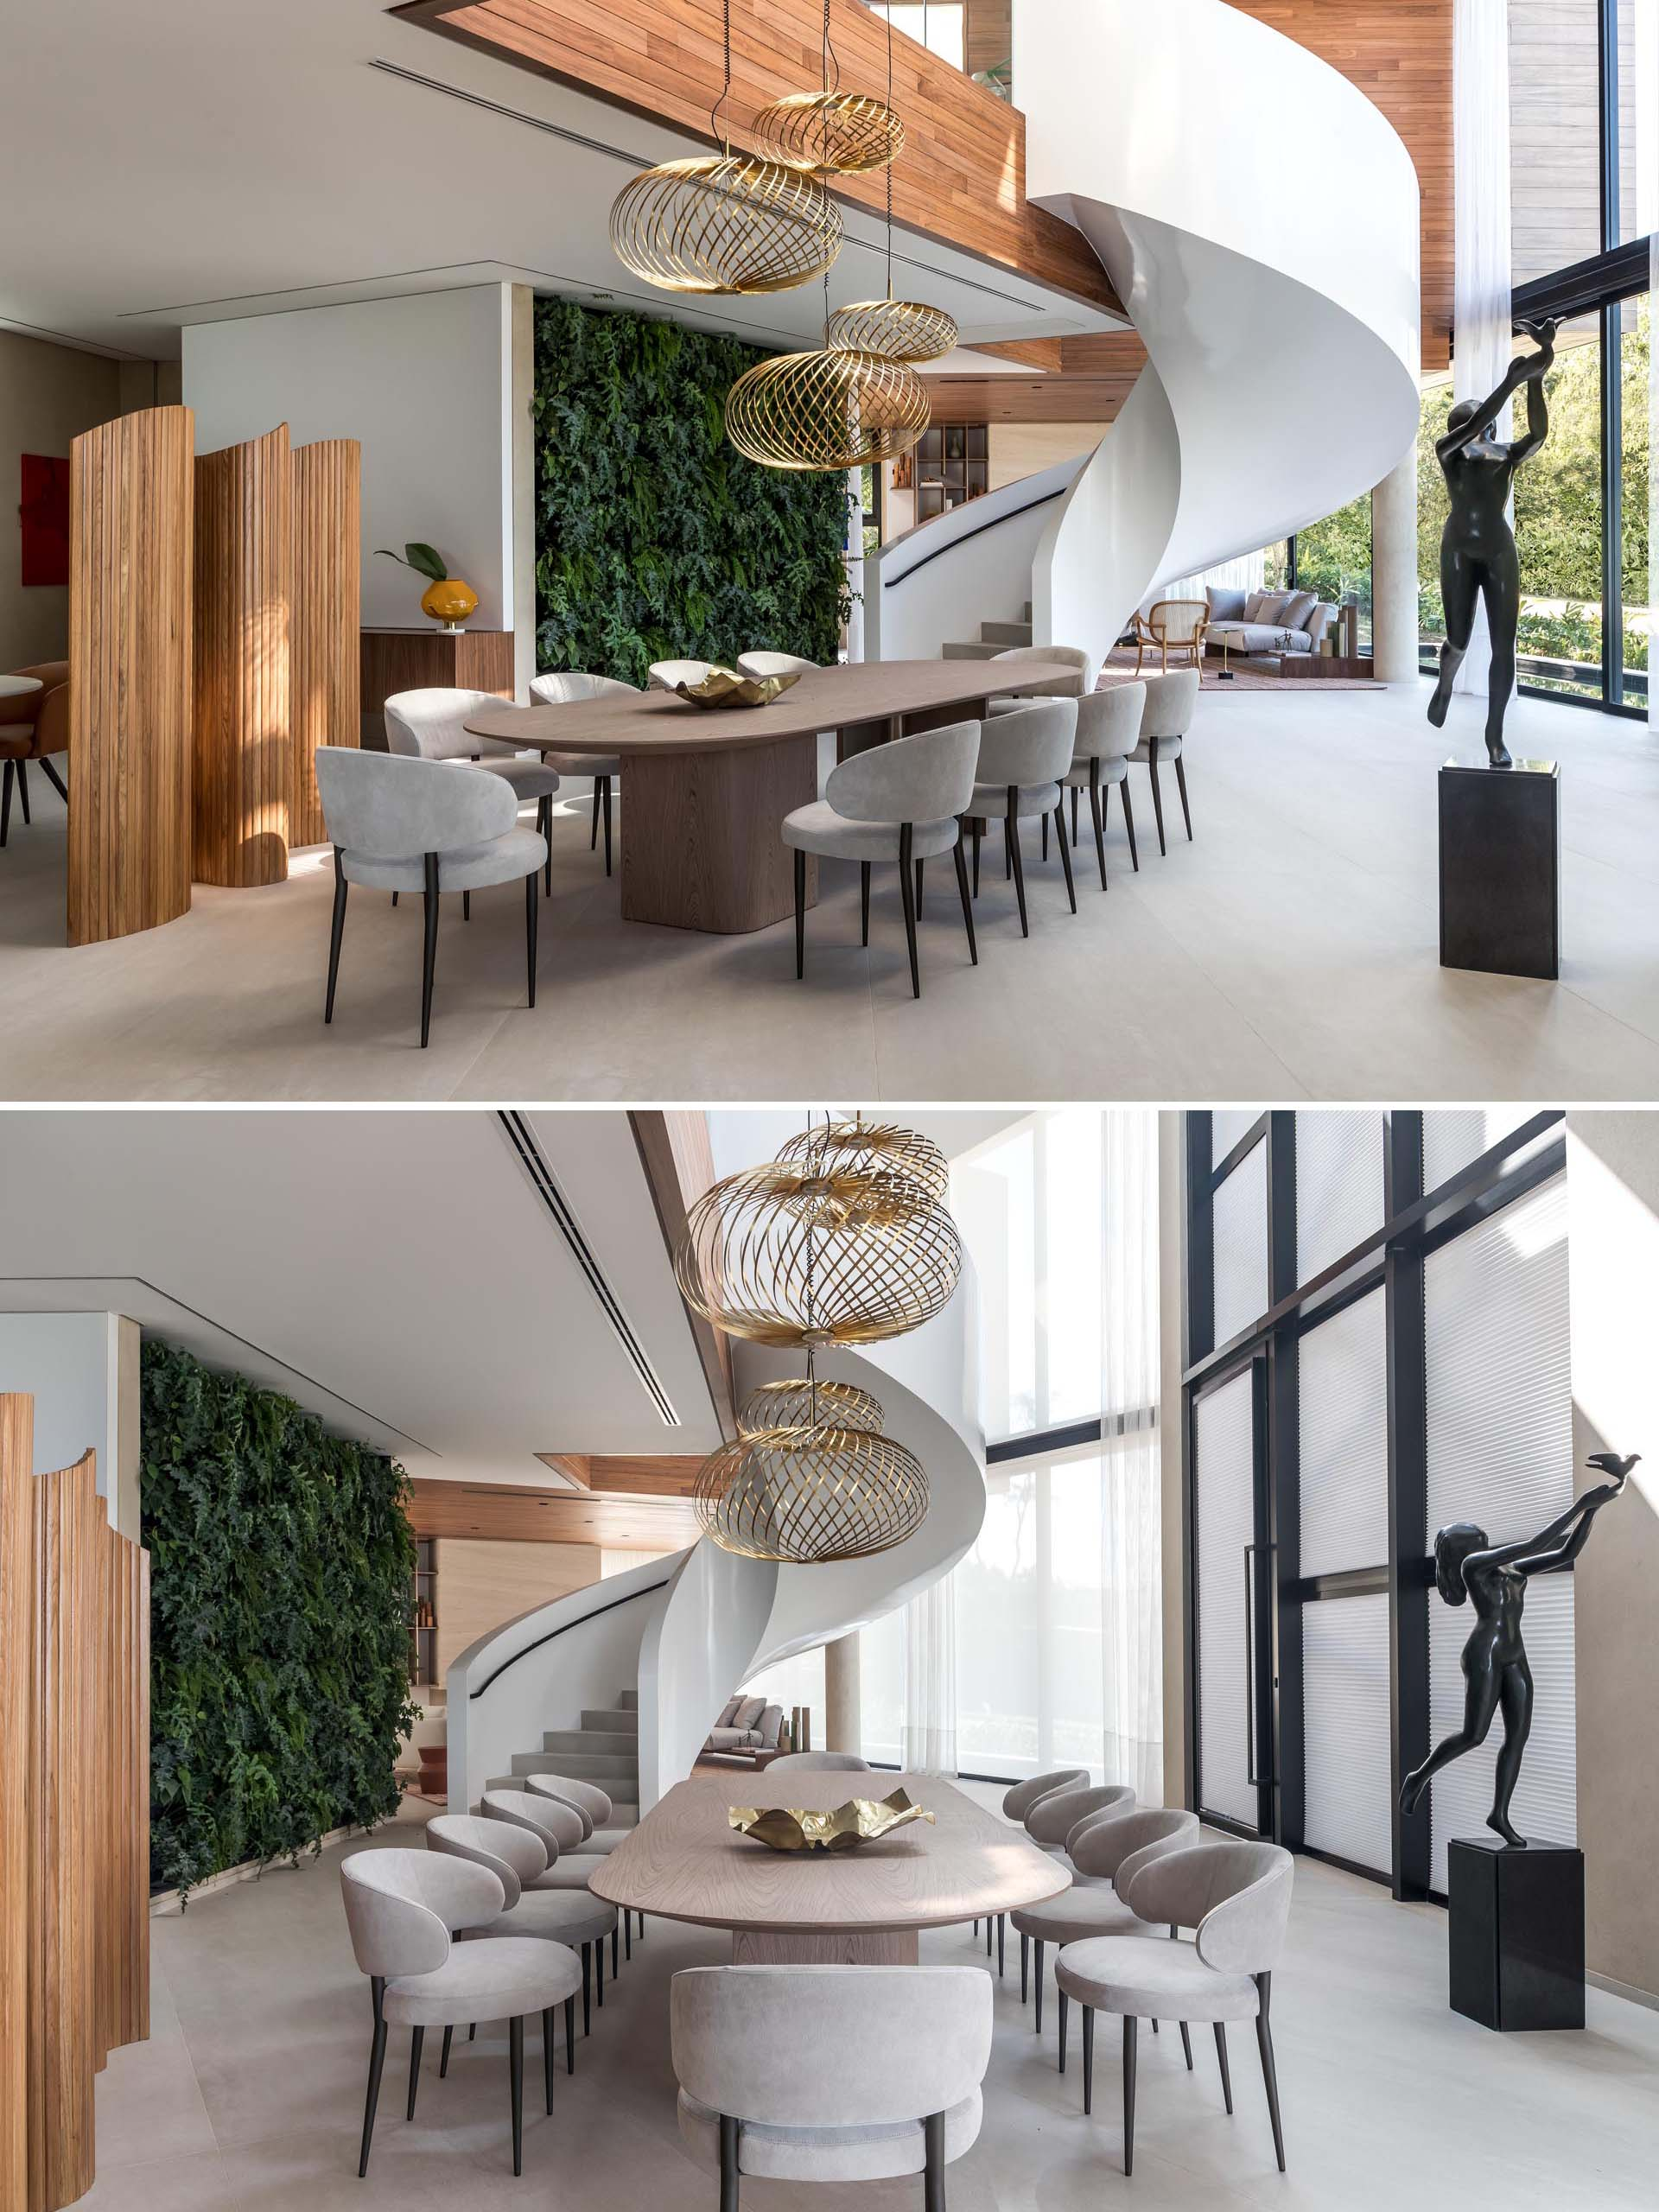 Sculptural metallic pendant lights hang above the rounded dining table in this modern dining room, while spiral stairs and a green wall separate the dining area from the living room.